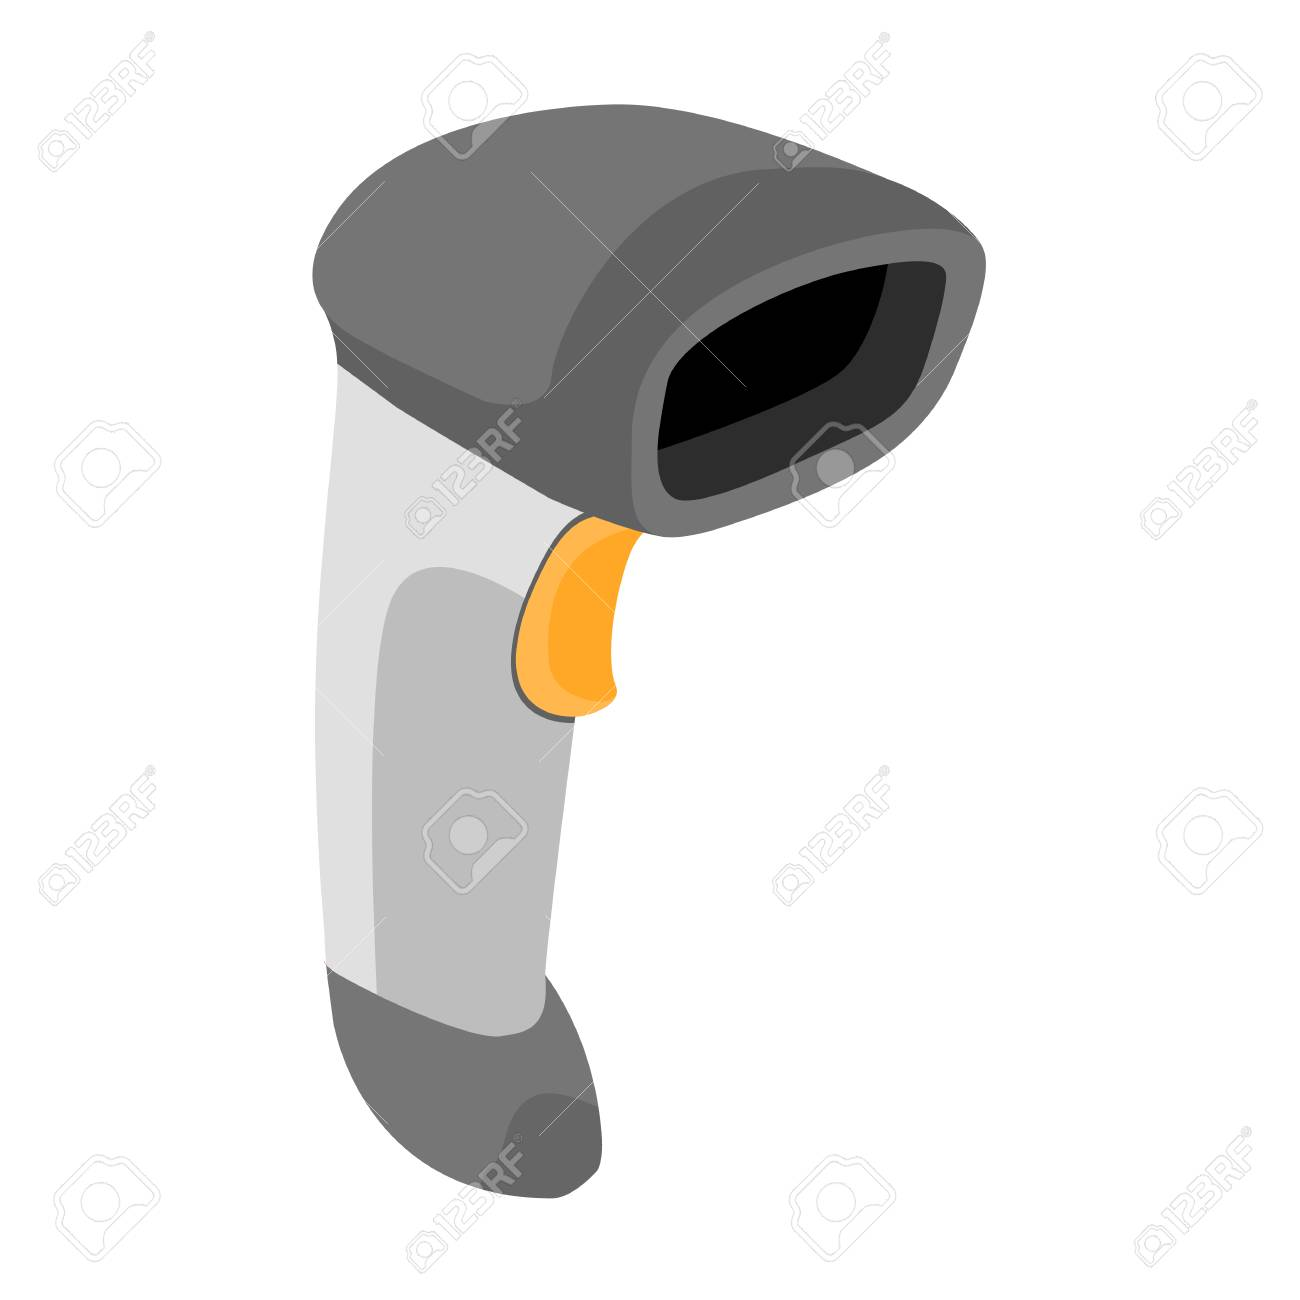 Barcode scanner hand held bar code scanner icon vector barcode scanner hand held bar code scanner icon vector illustration stock vector 79868408 biocorpaavc Images